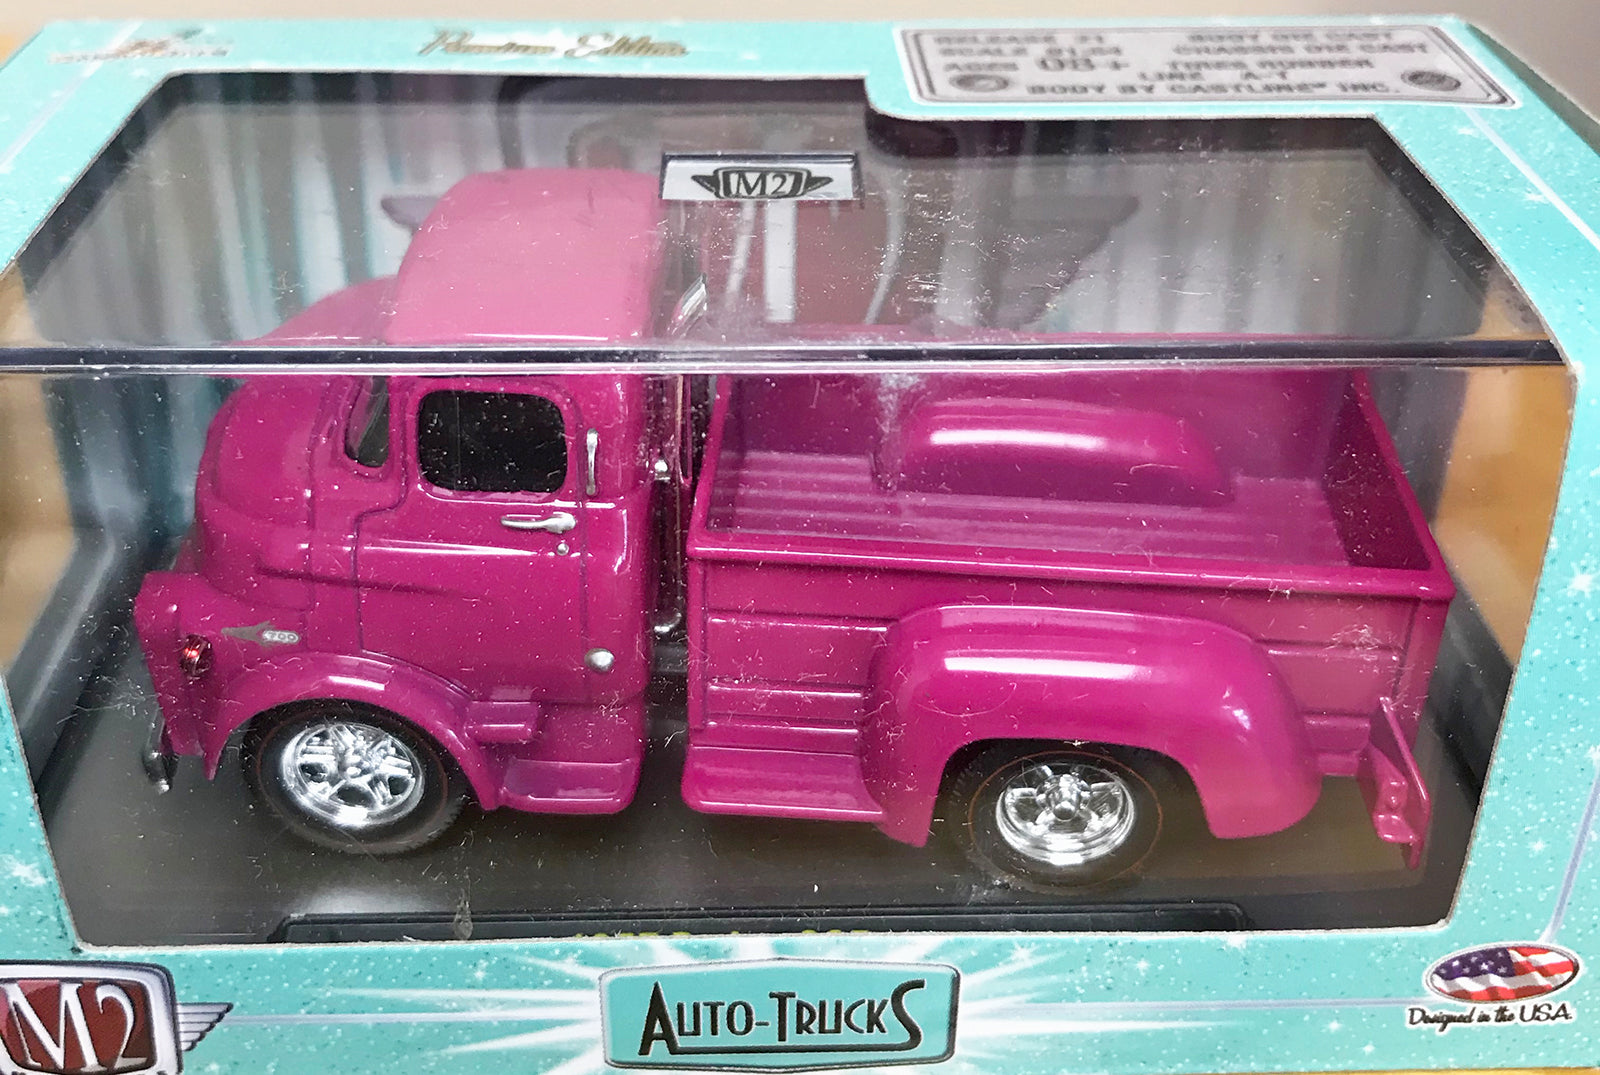 S 1957 Dodge COE Pick up - Pink